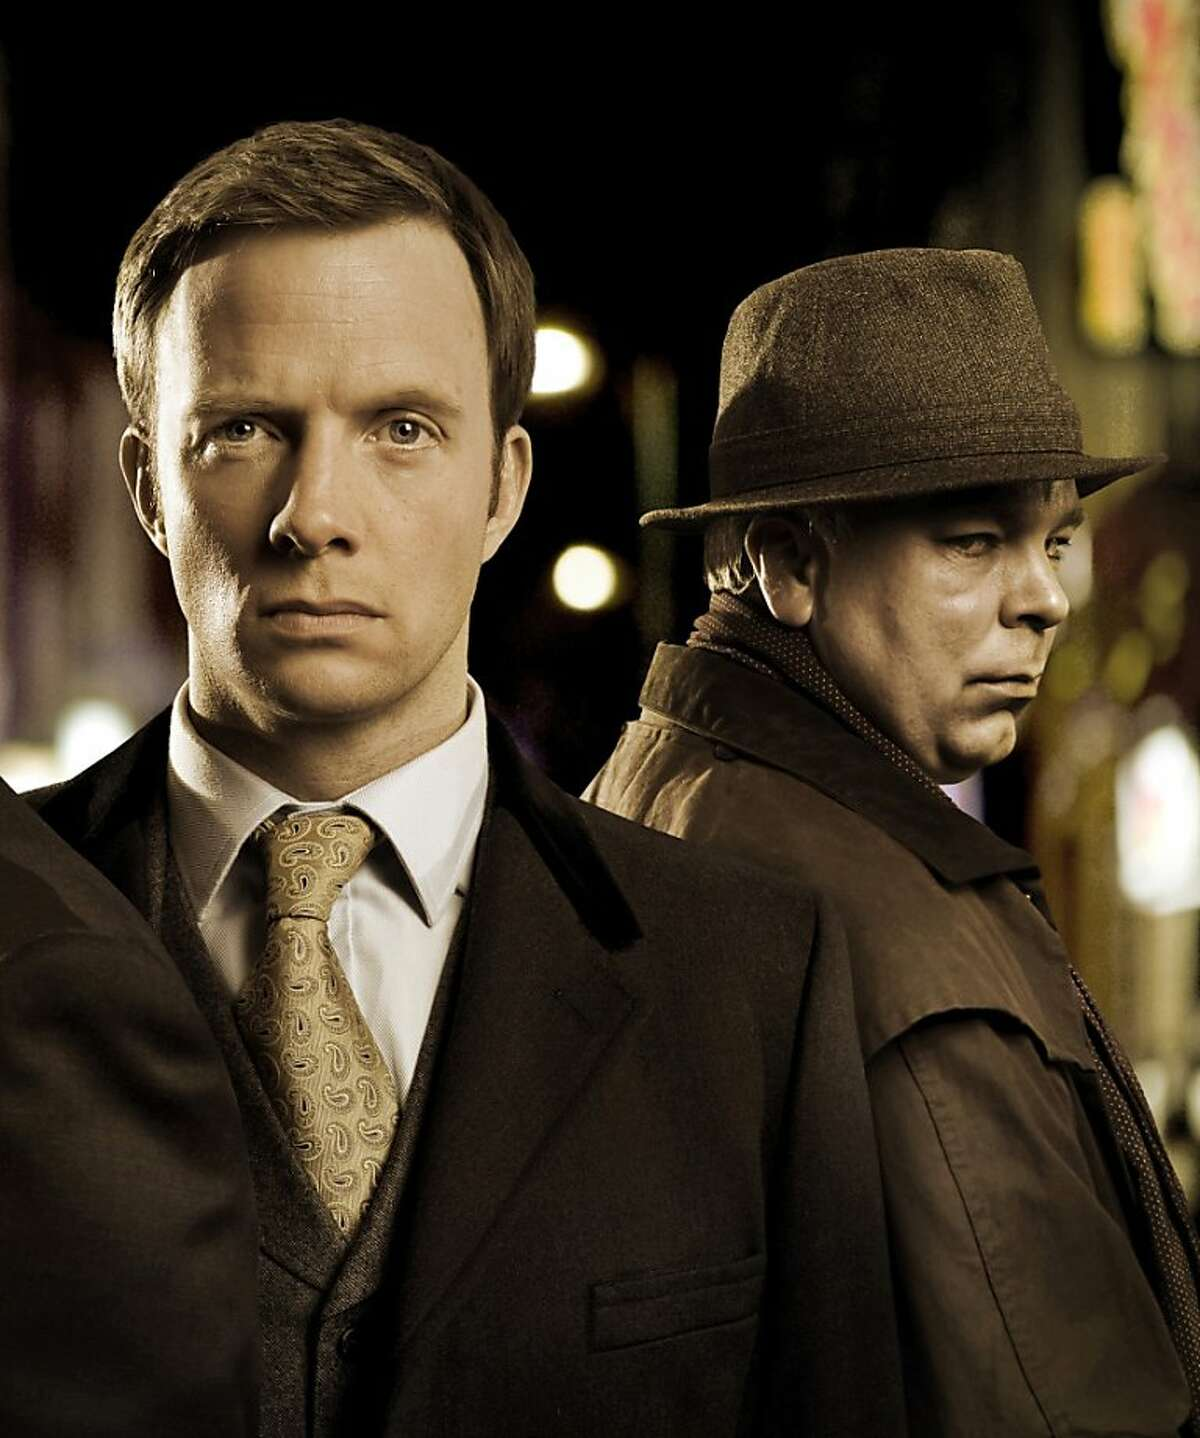 DS Miles (Phil Davis, from left), DI Chandler (Rupert Penry-Jones), and Buchan (Steve Pemberton) of the British show